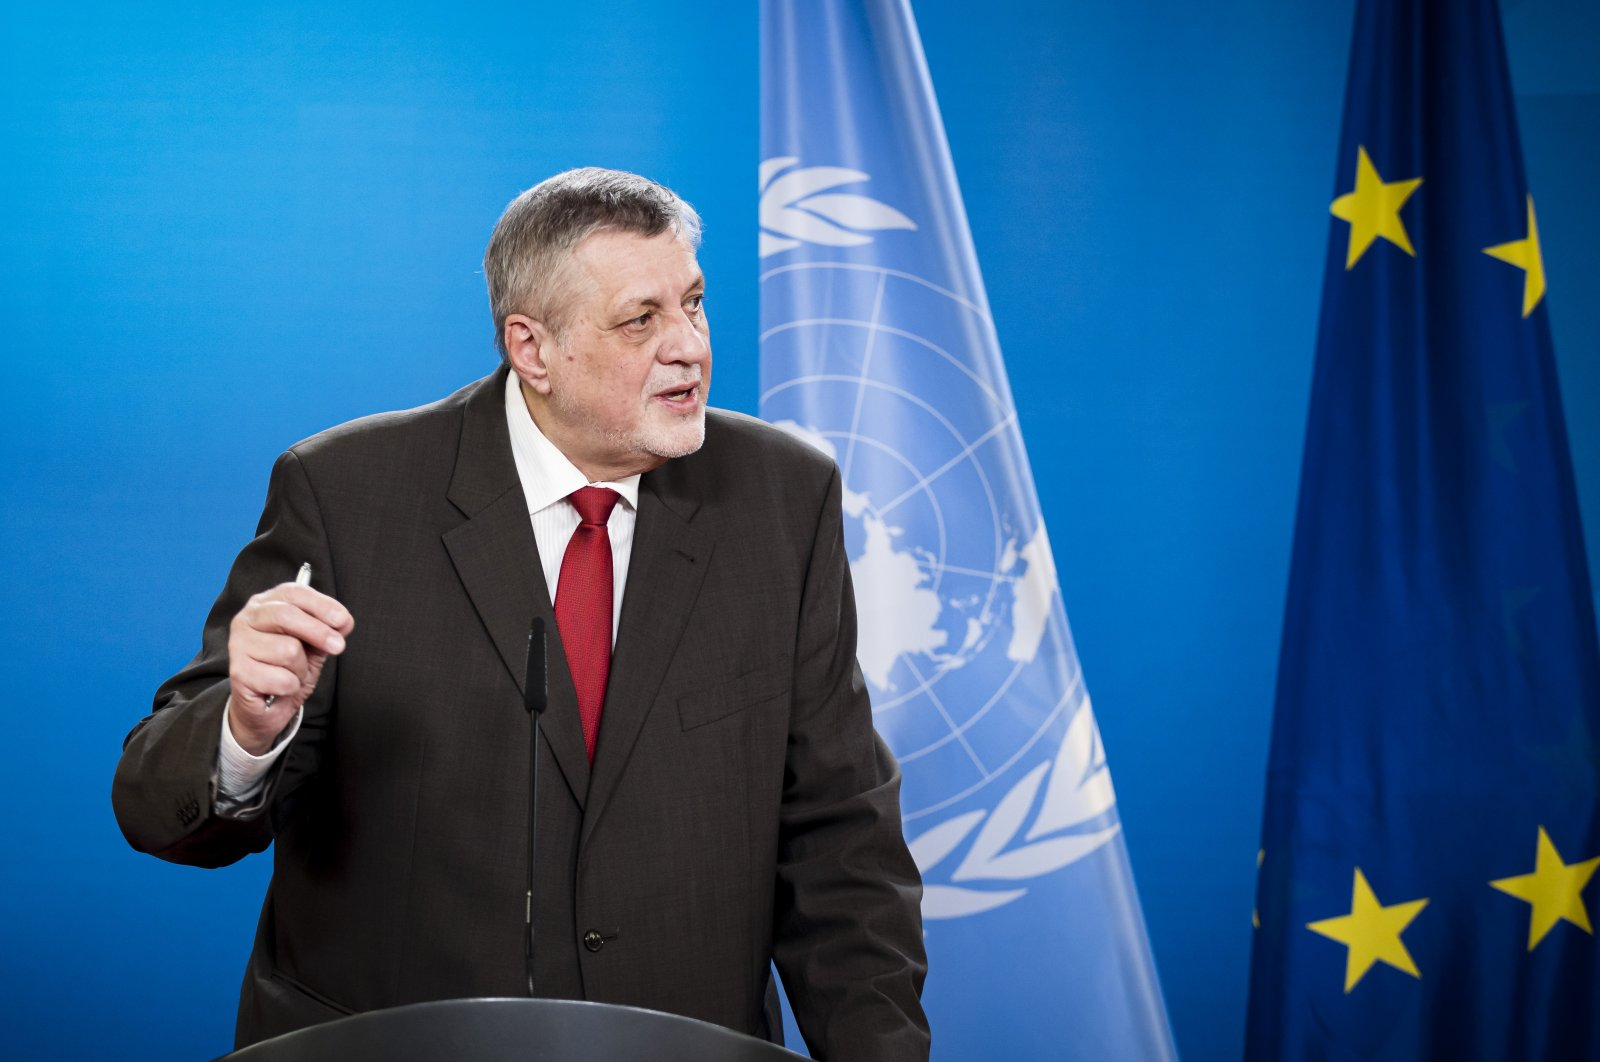 Jan Kubis, head of the United Nations Support Mission in Libya, speaks during a press conference at the Federal Foreign Office in Berlin, Germany, March 18, 2021. (Getty Images)